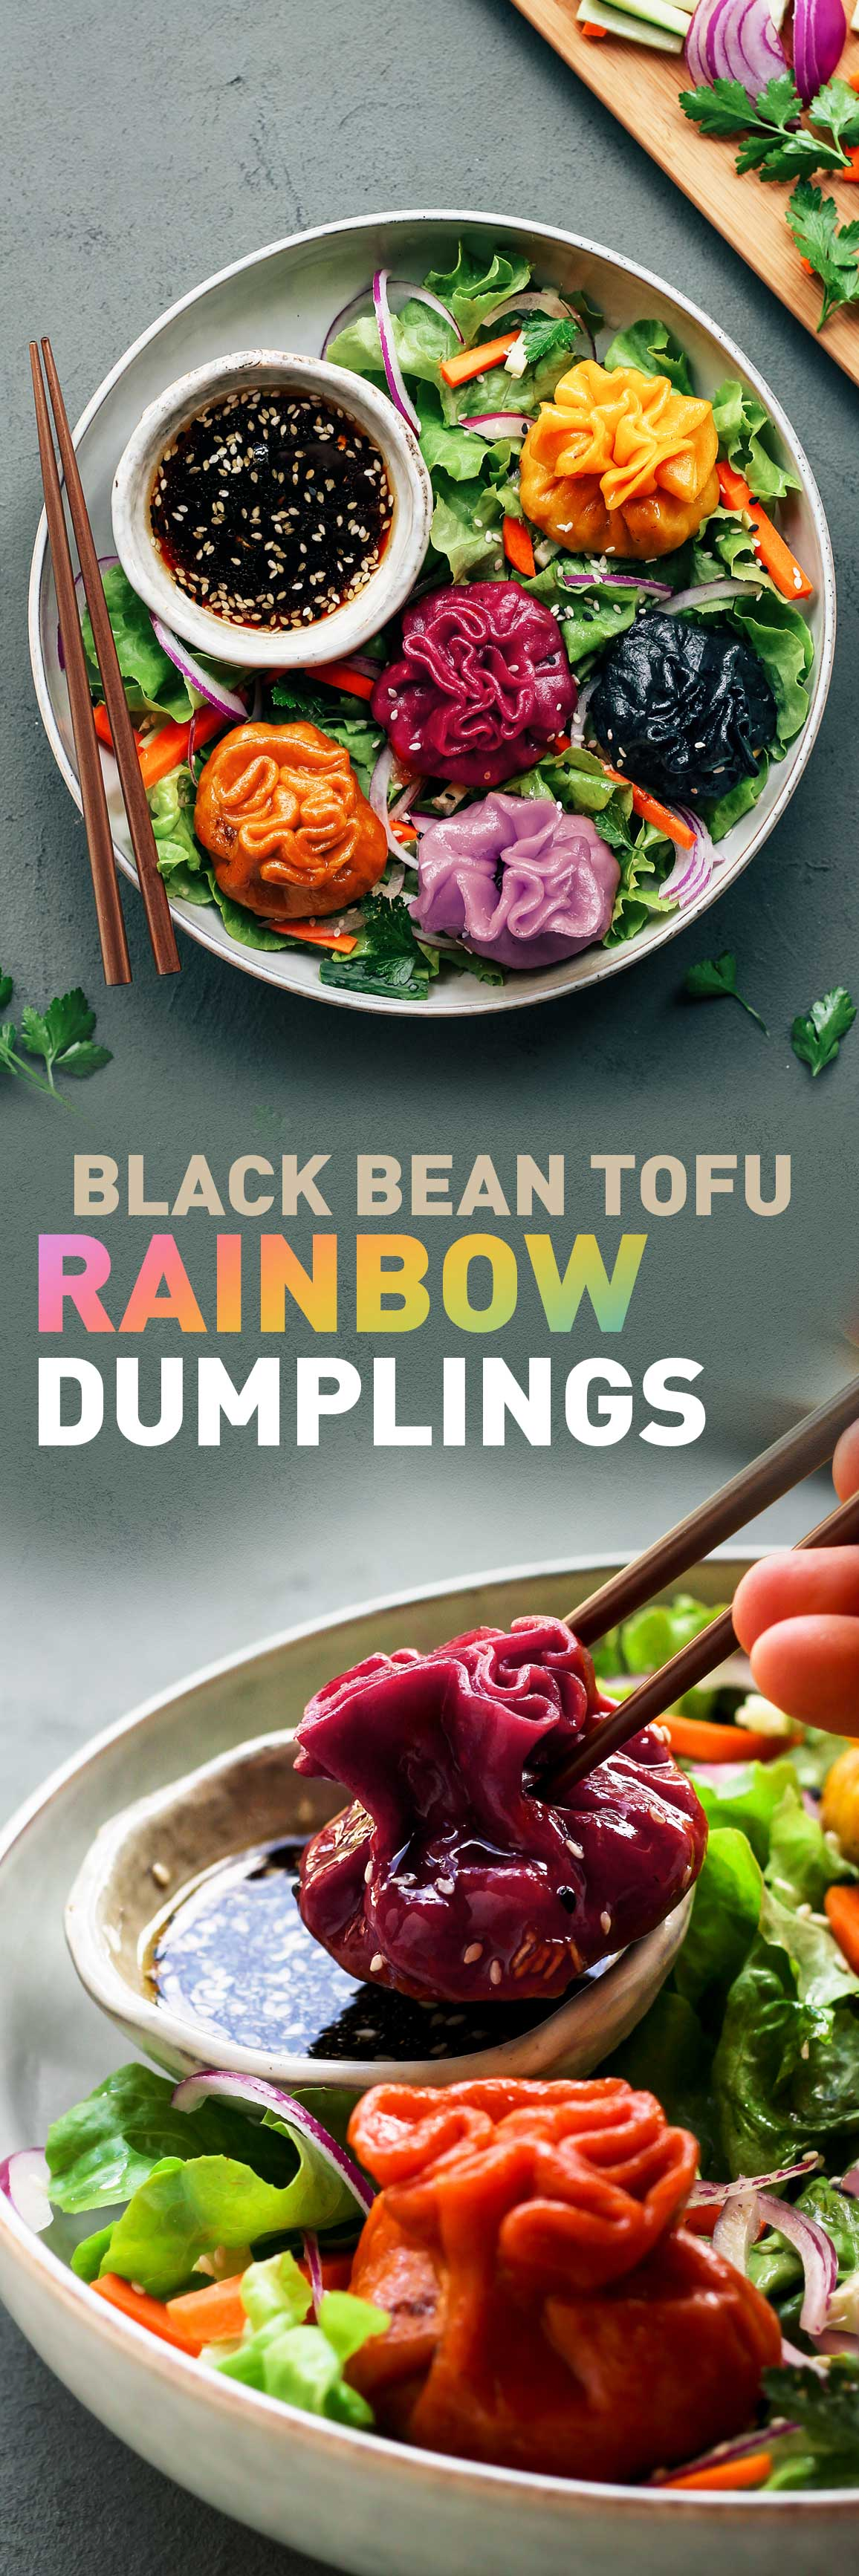 Vegan Black Bean Tofu Dumplings